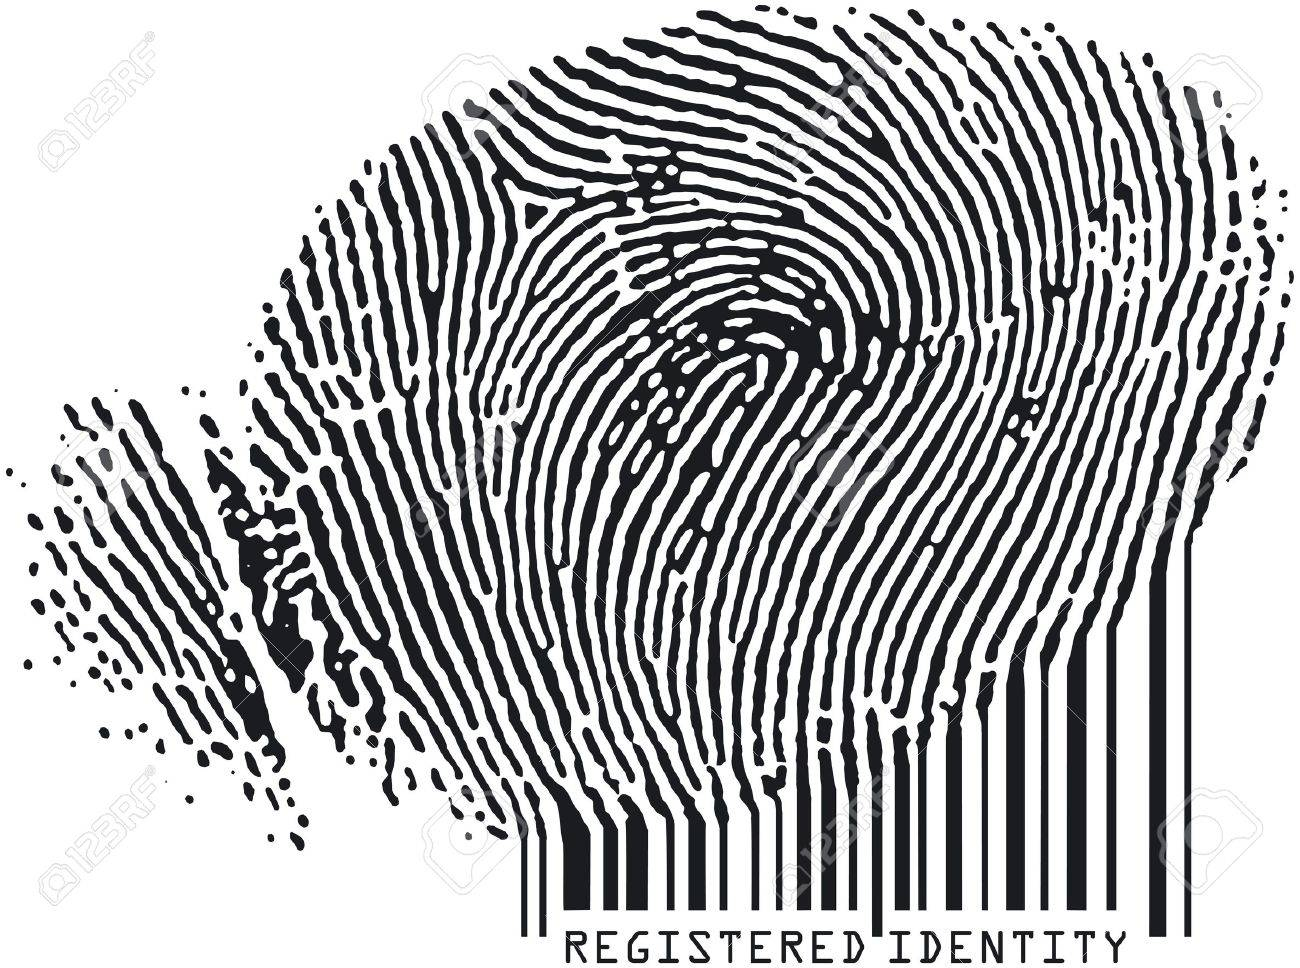 Registered Identity - Fingerprint becoming barcode Stock Photo - 676841